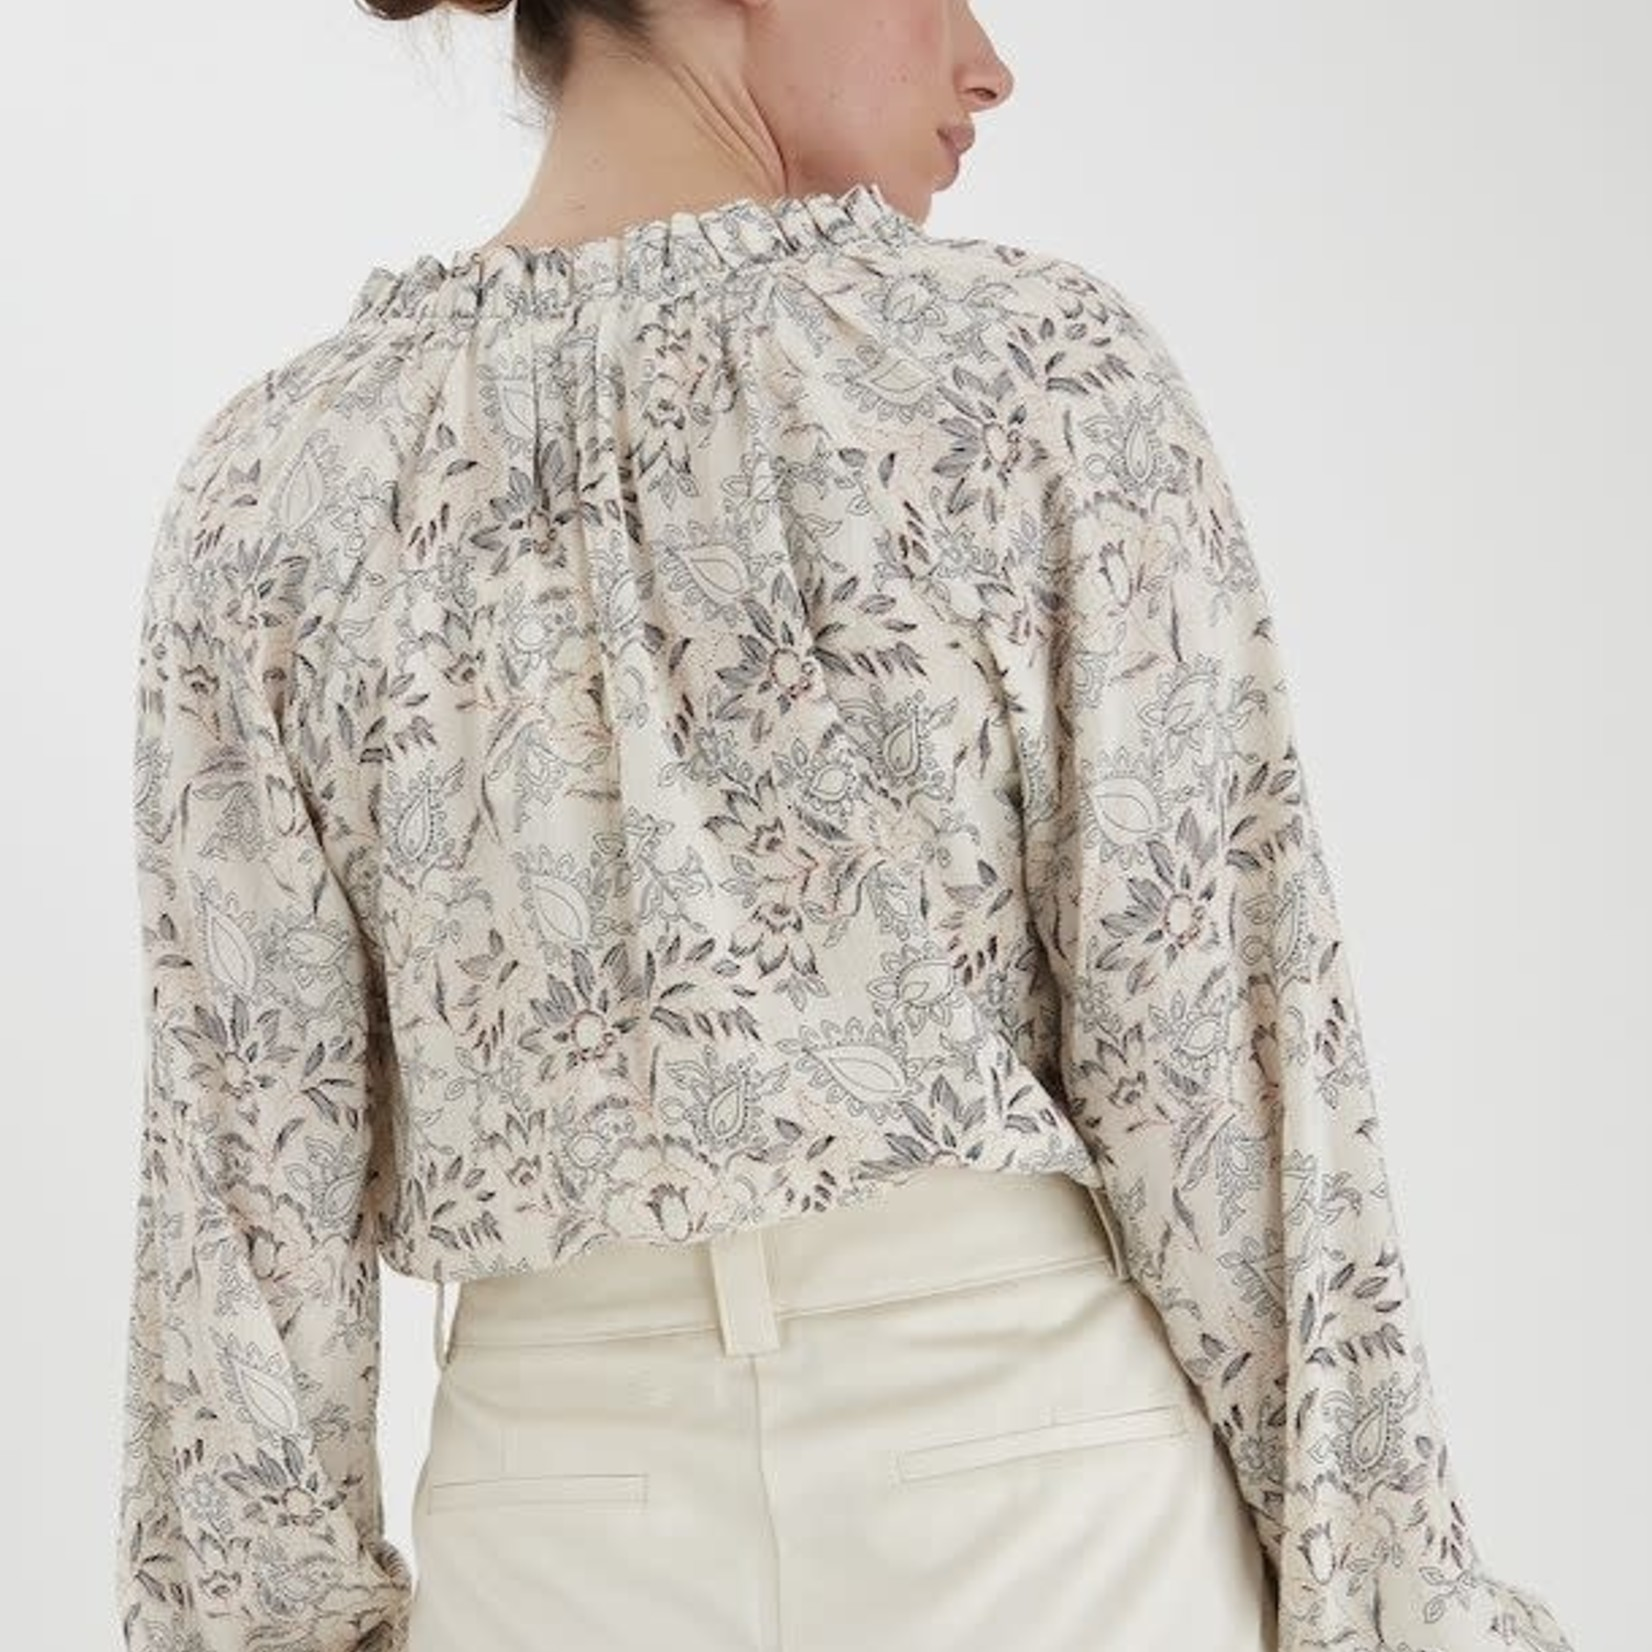 b.young Fiona Blouse